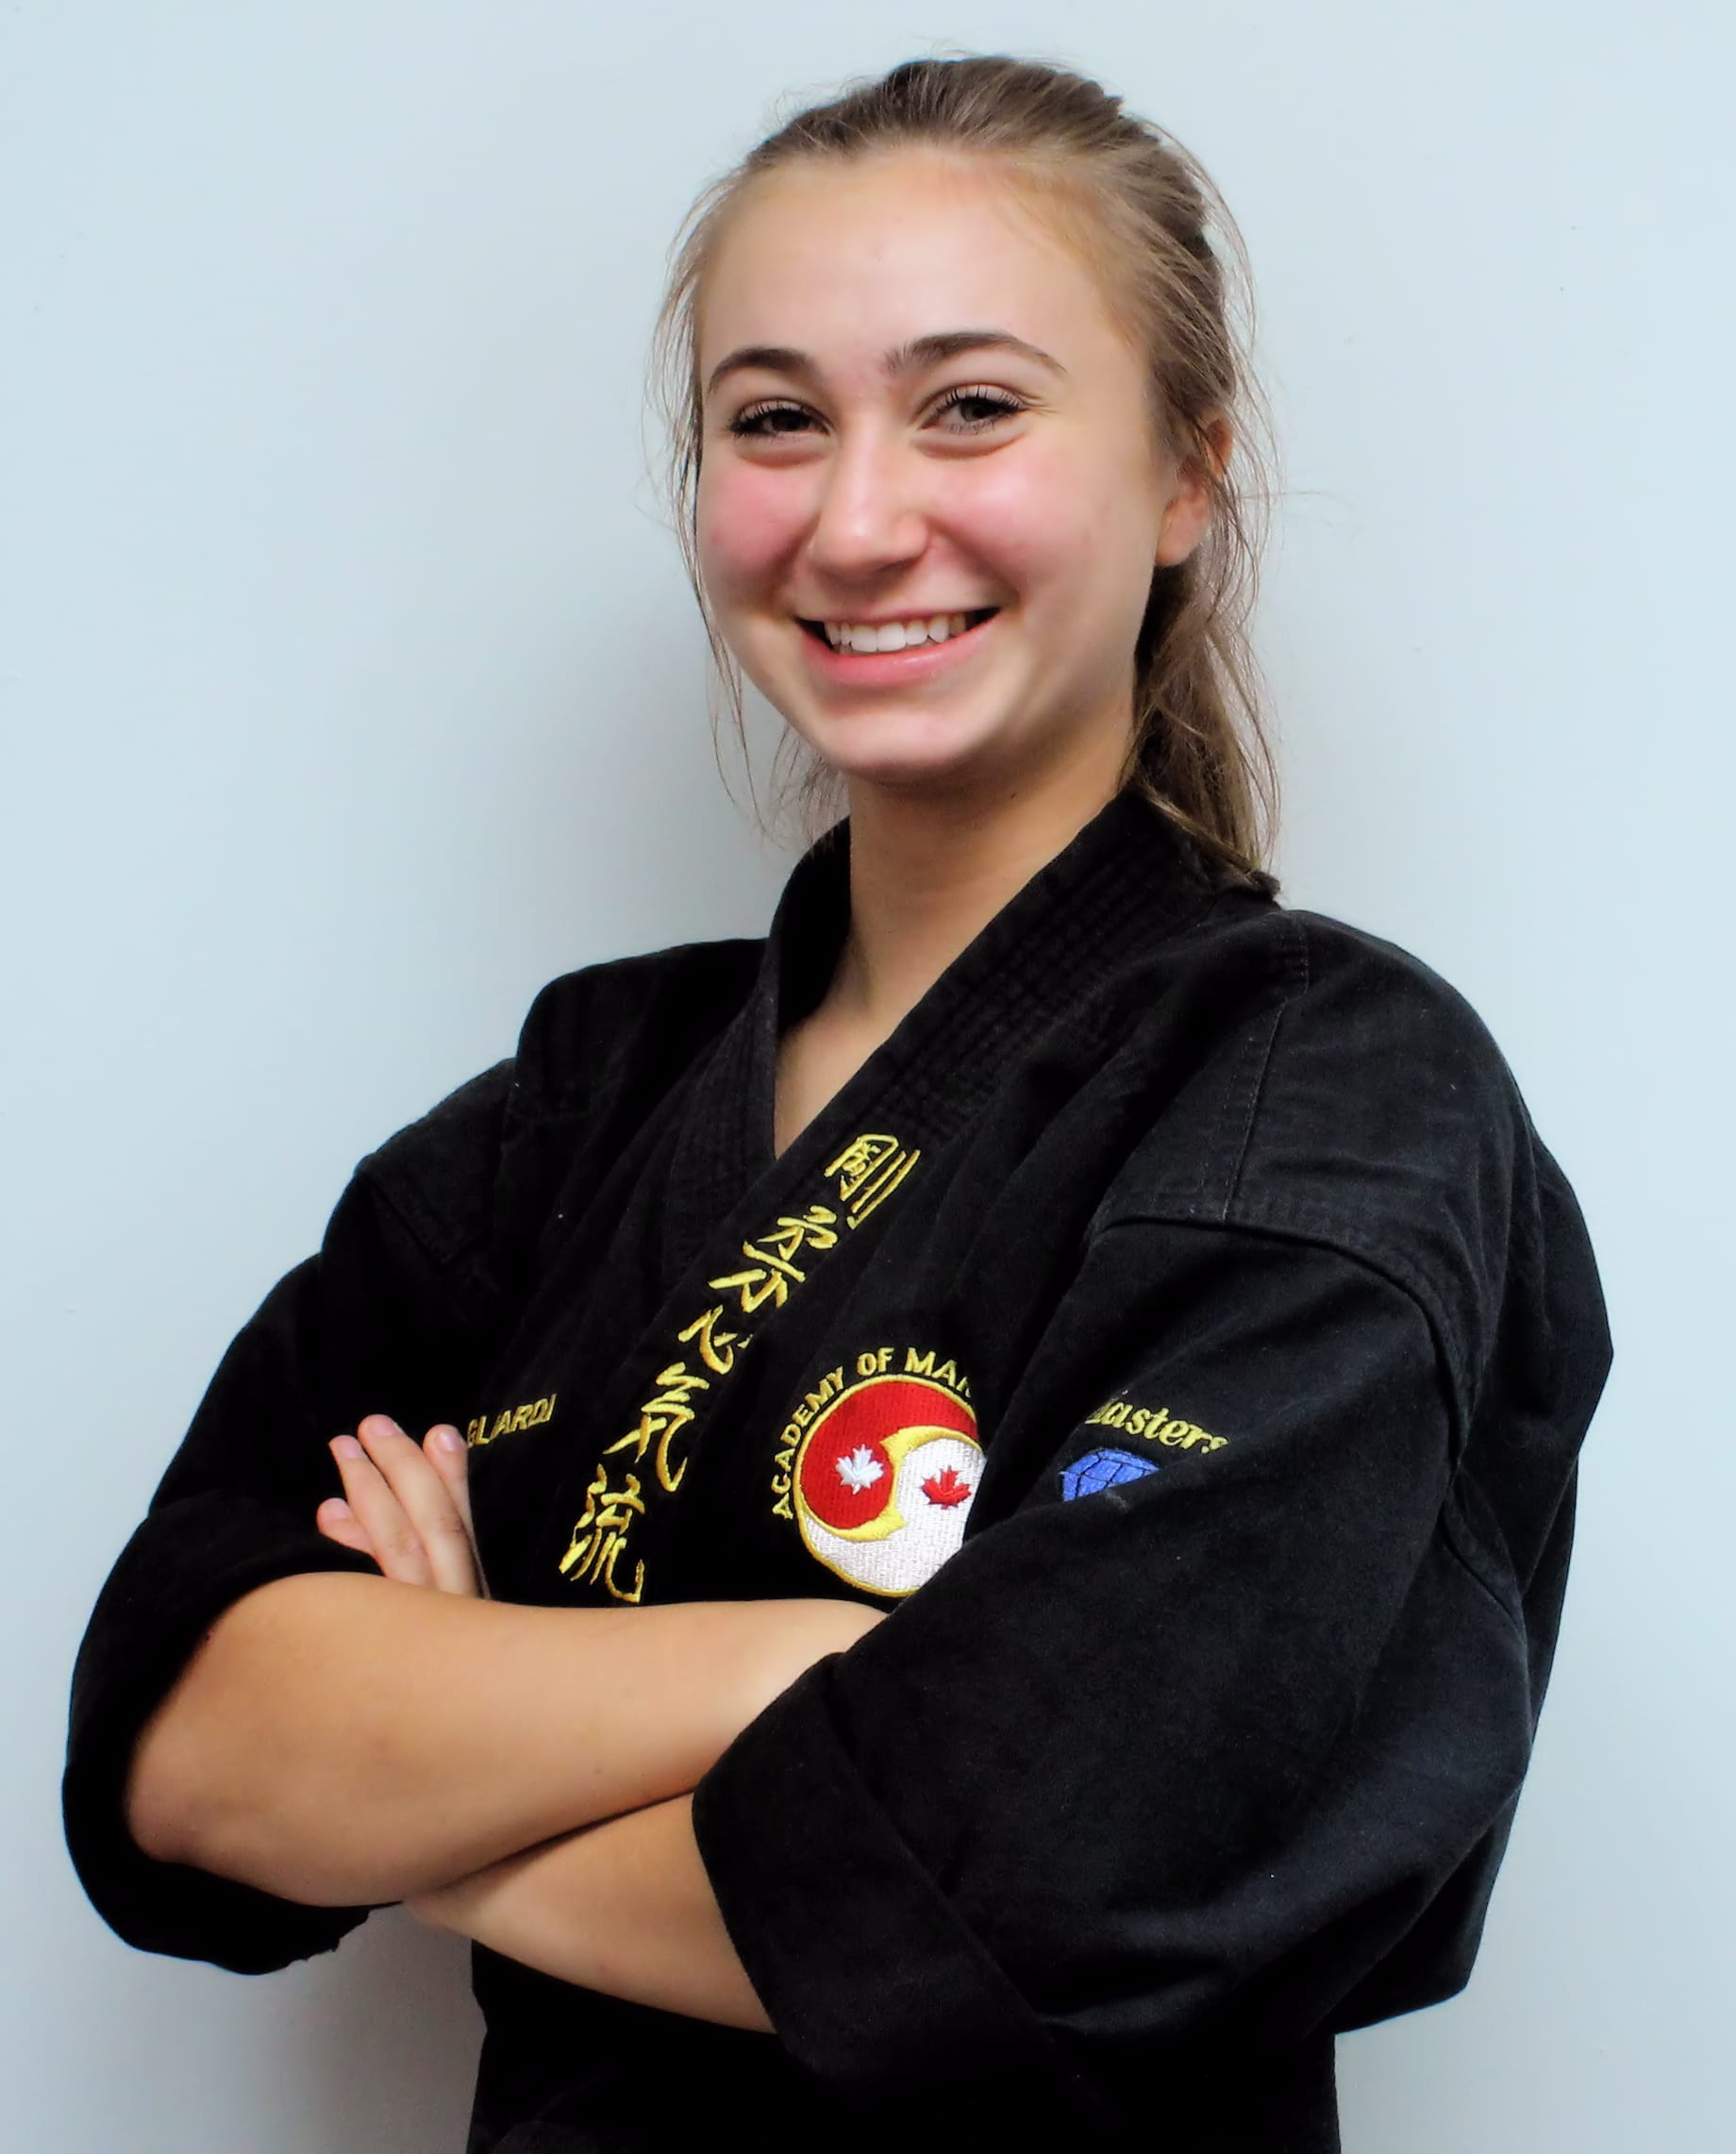 Anjelika Gagliardi in Mississauga - Academy Of Martial Arts